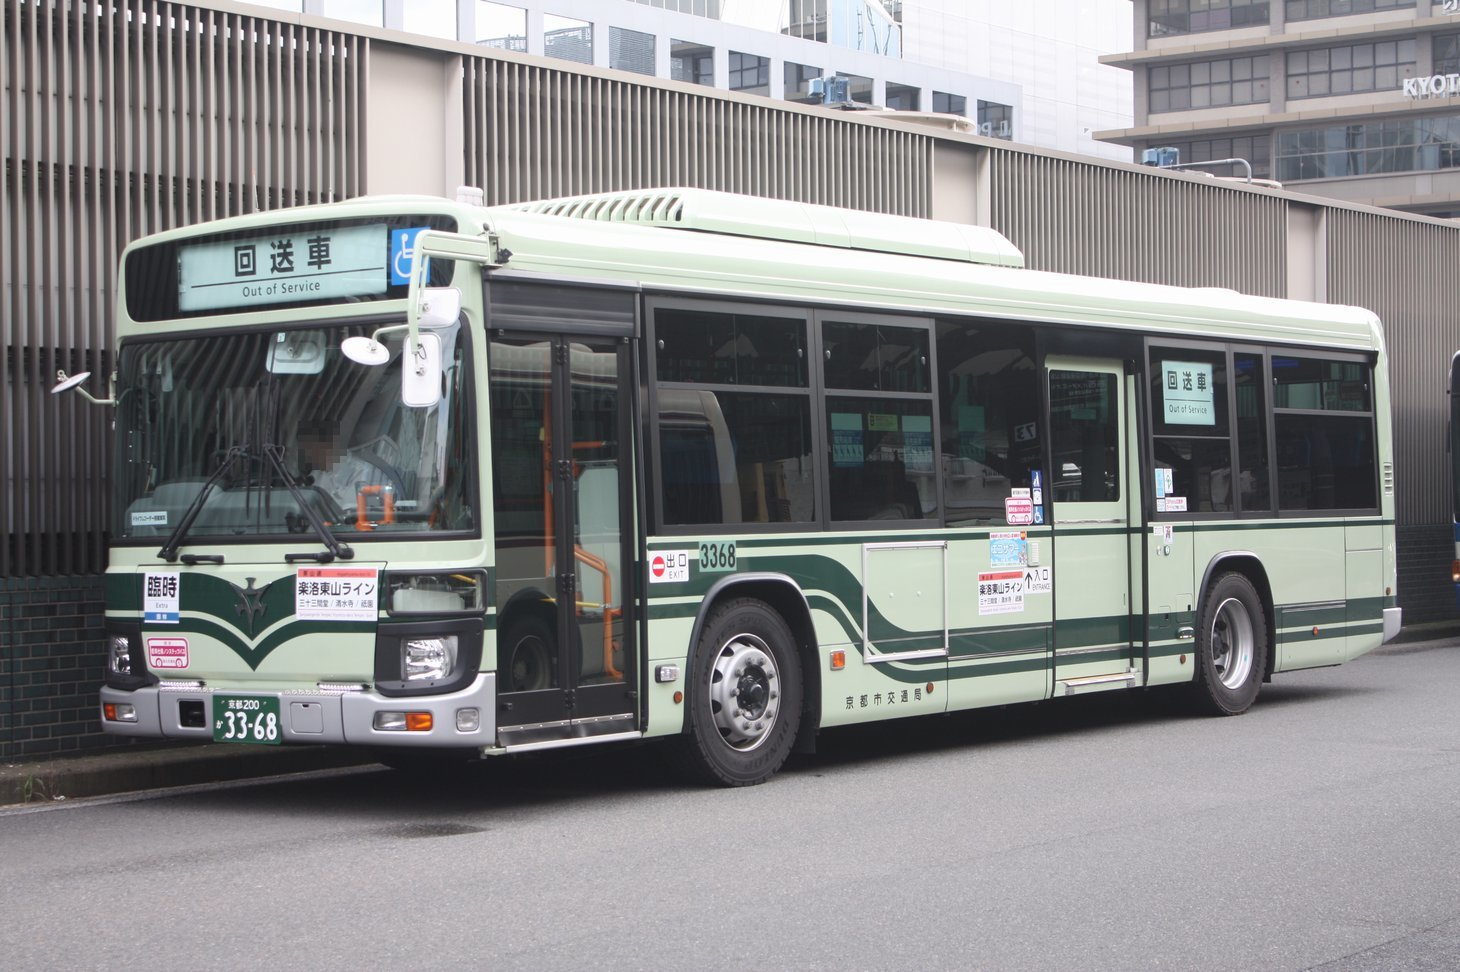 kyoto_city_bus 3368